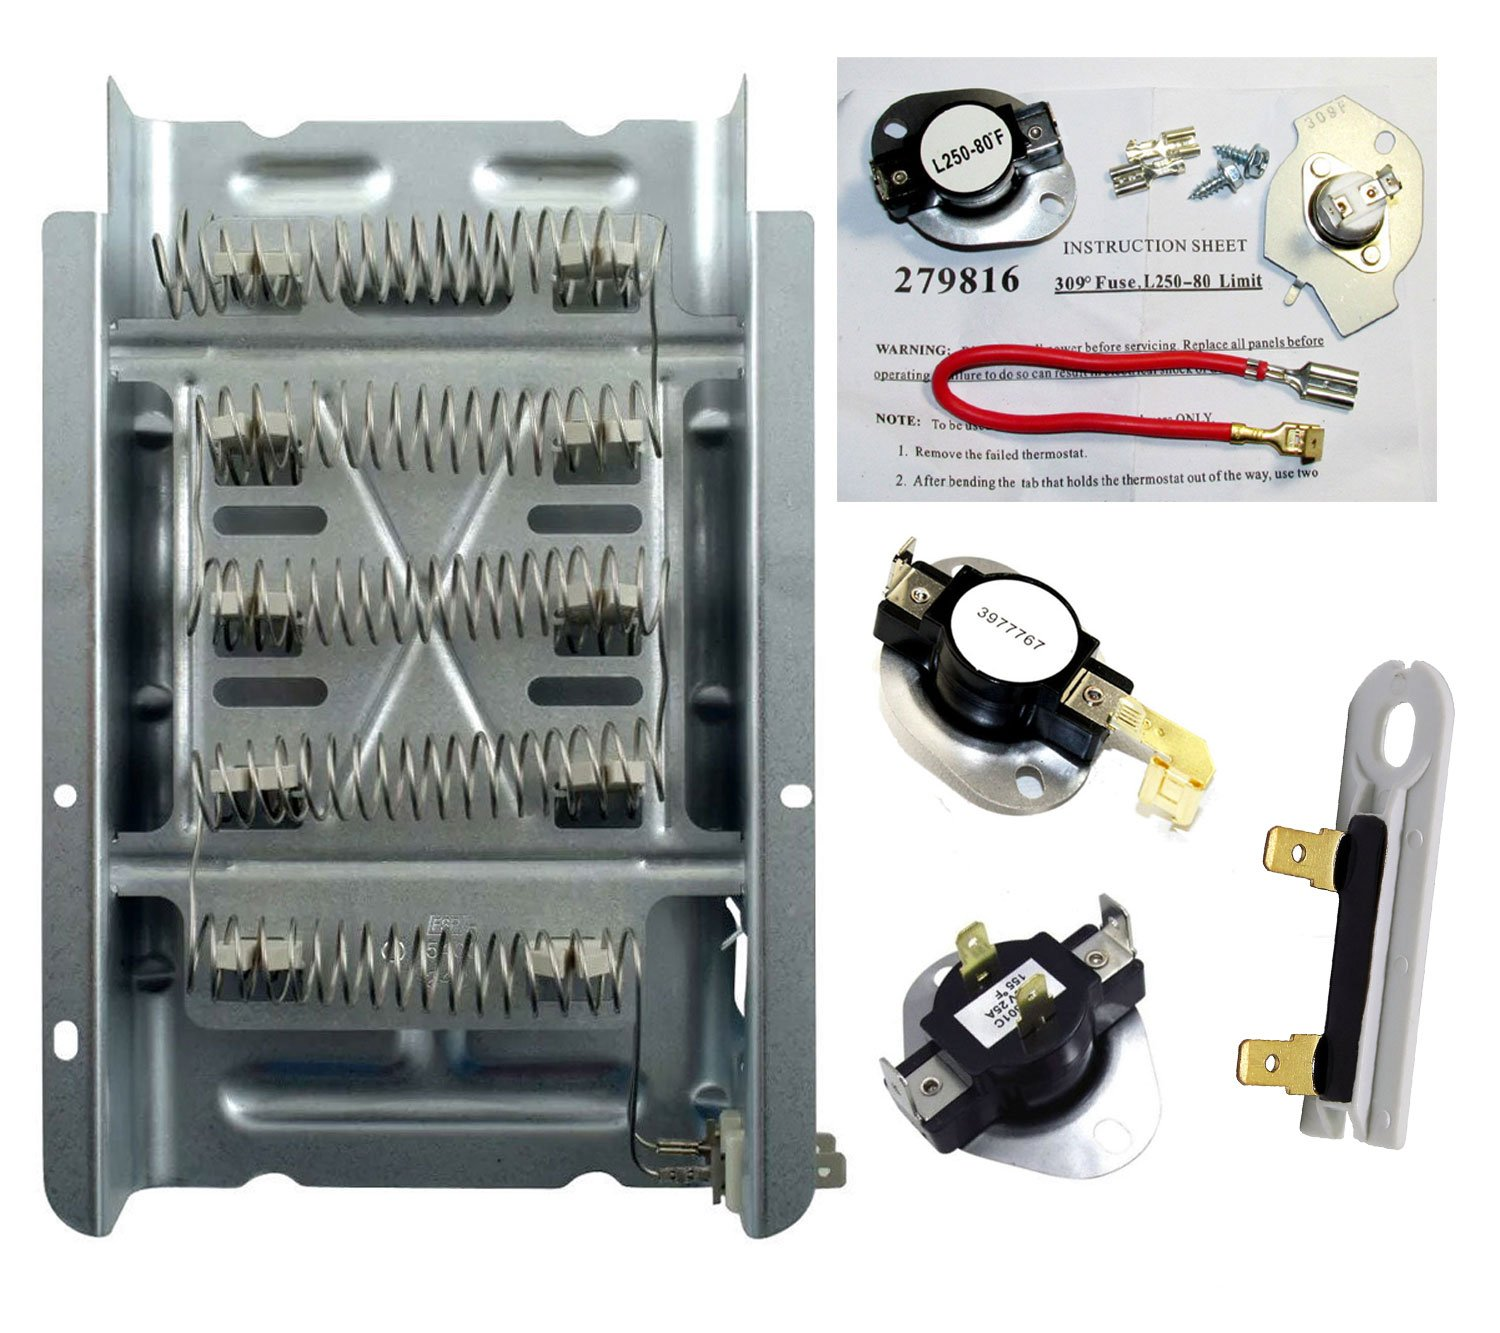 Dryer Heater Thermostat Fuse Kit That Works With Whirlpool WED4800BQ1